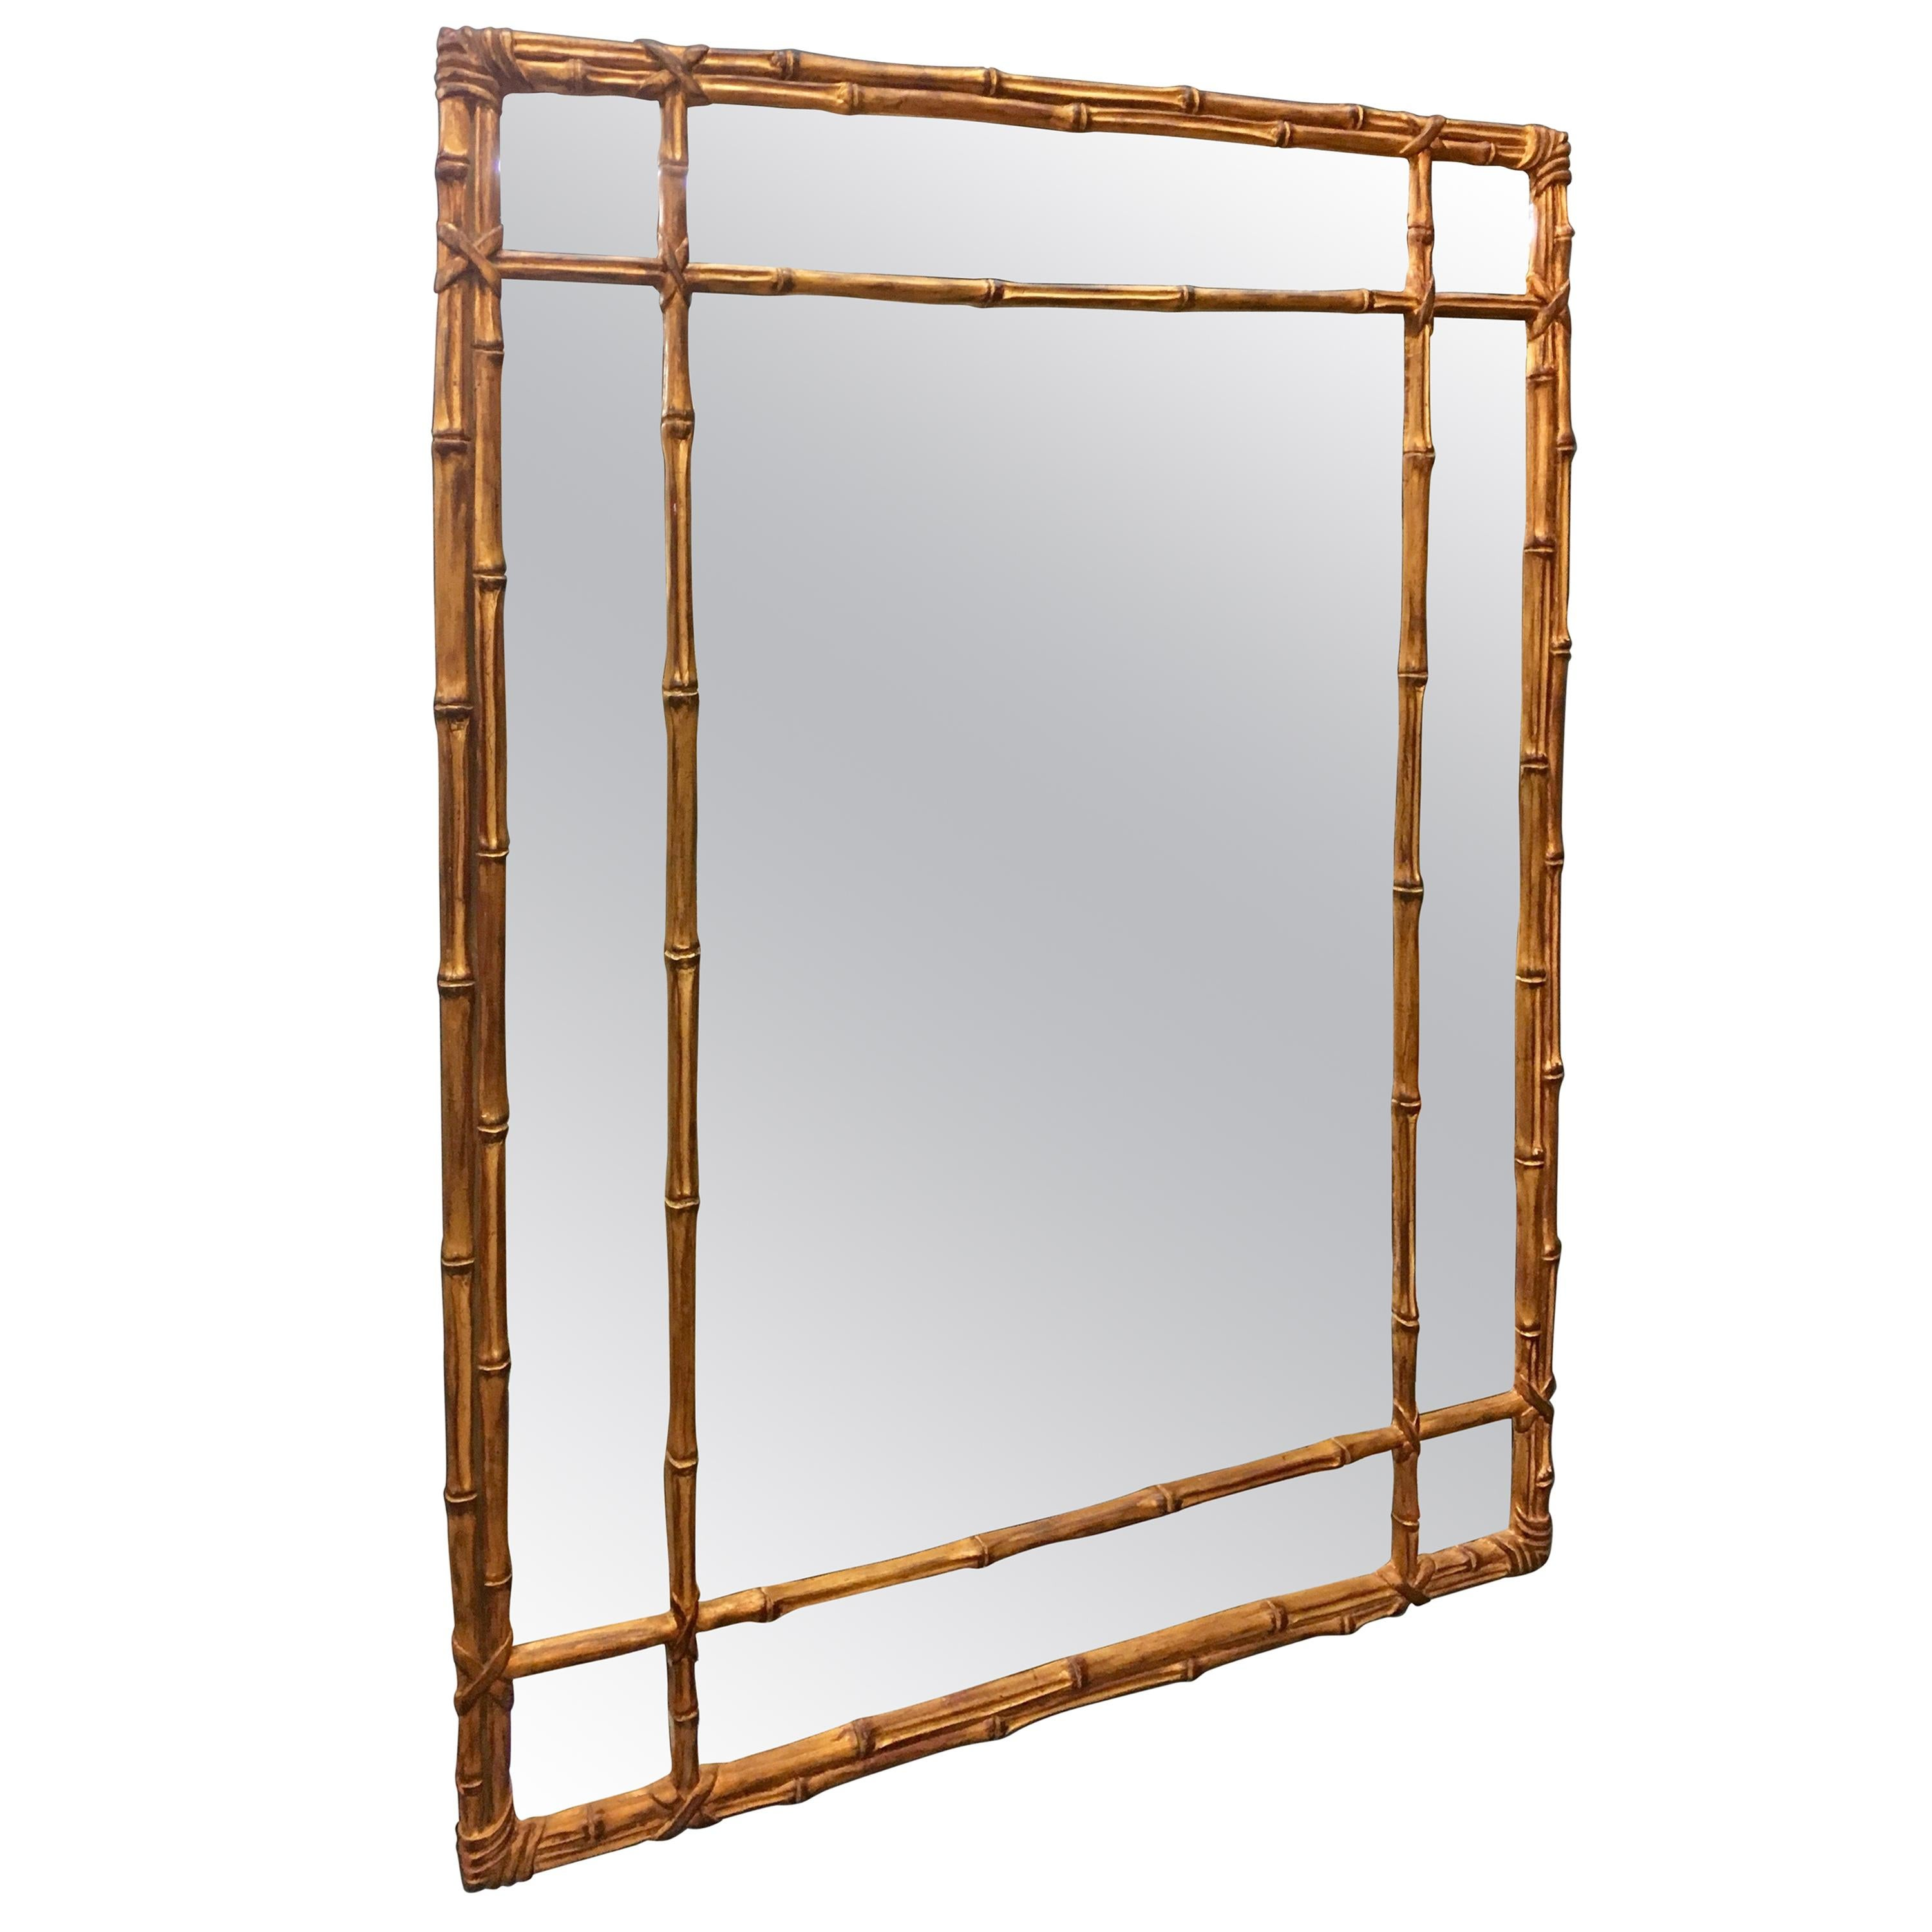 Chinese Chippendale Faux Bamboo Chinoiserie Style Mid Century Gilt Wall Mirror